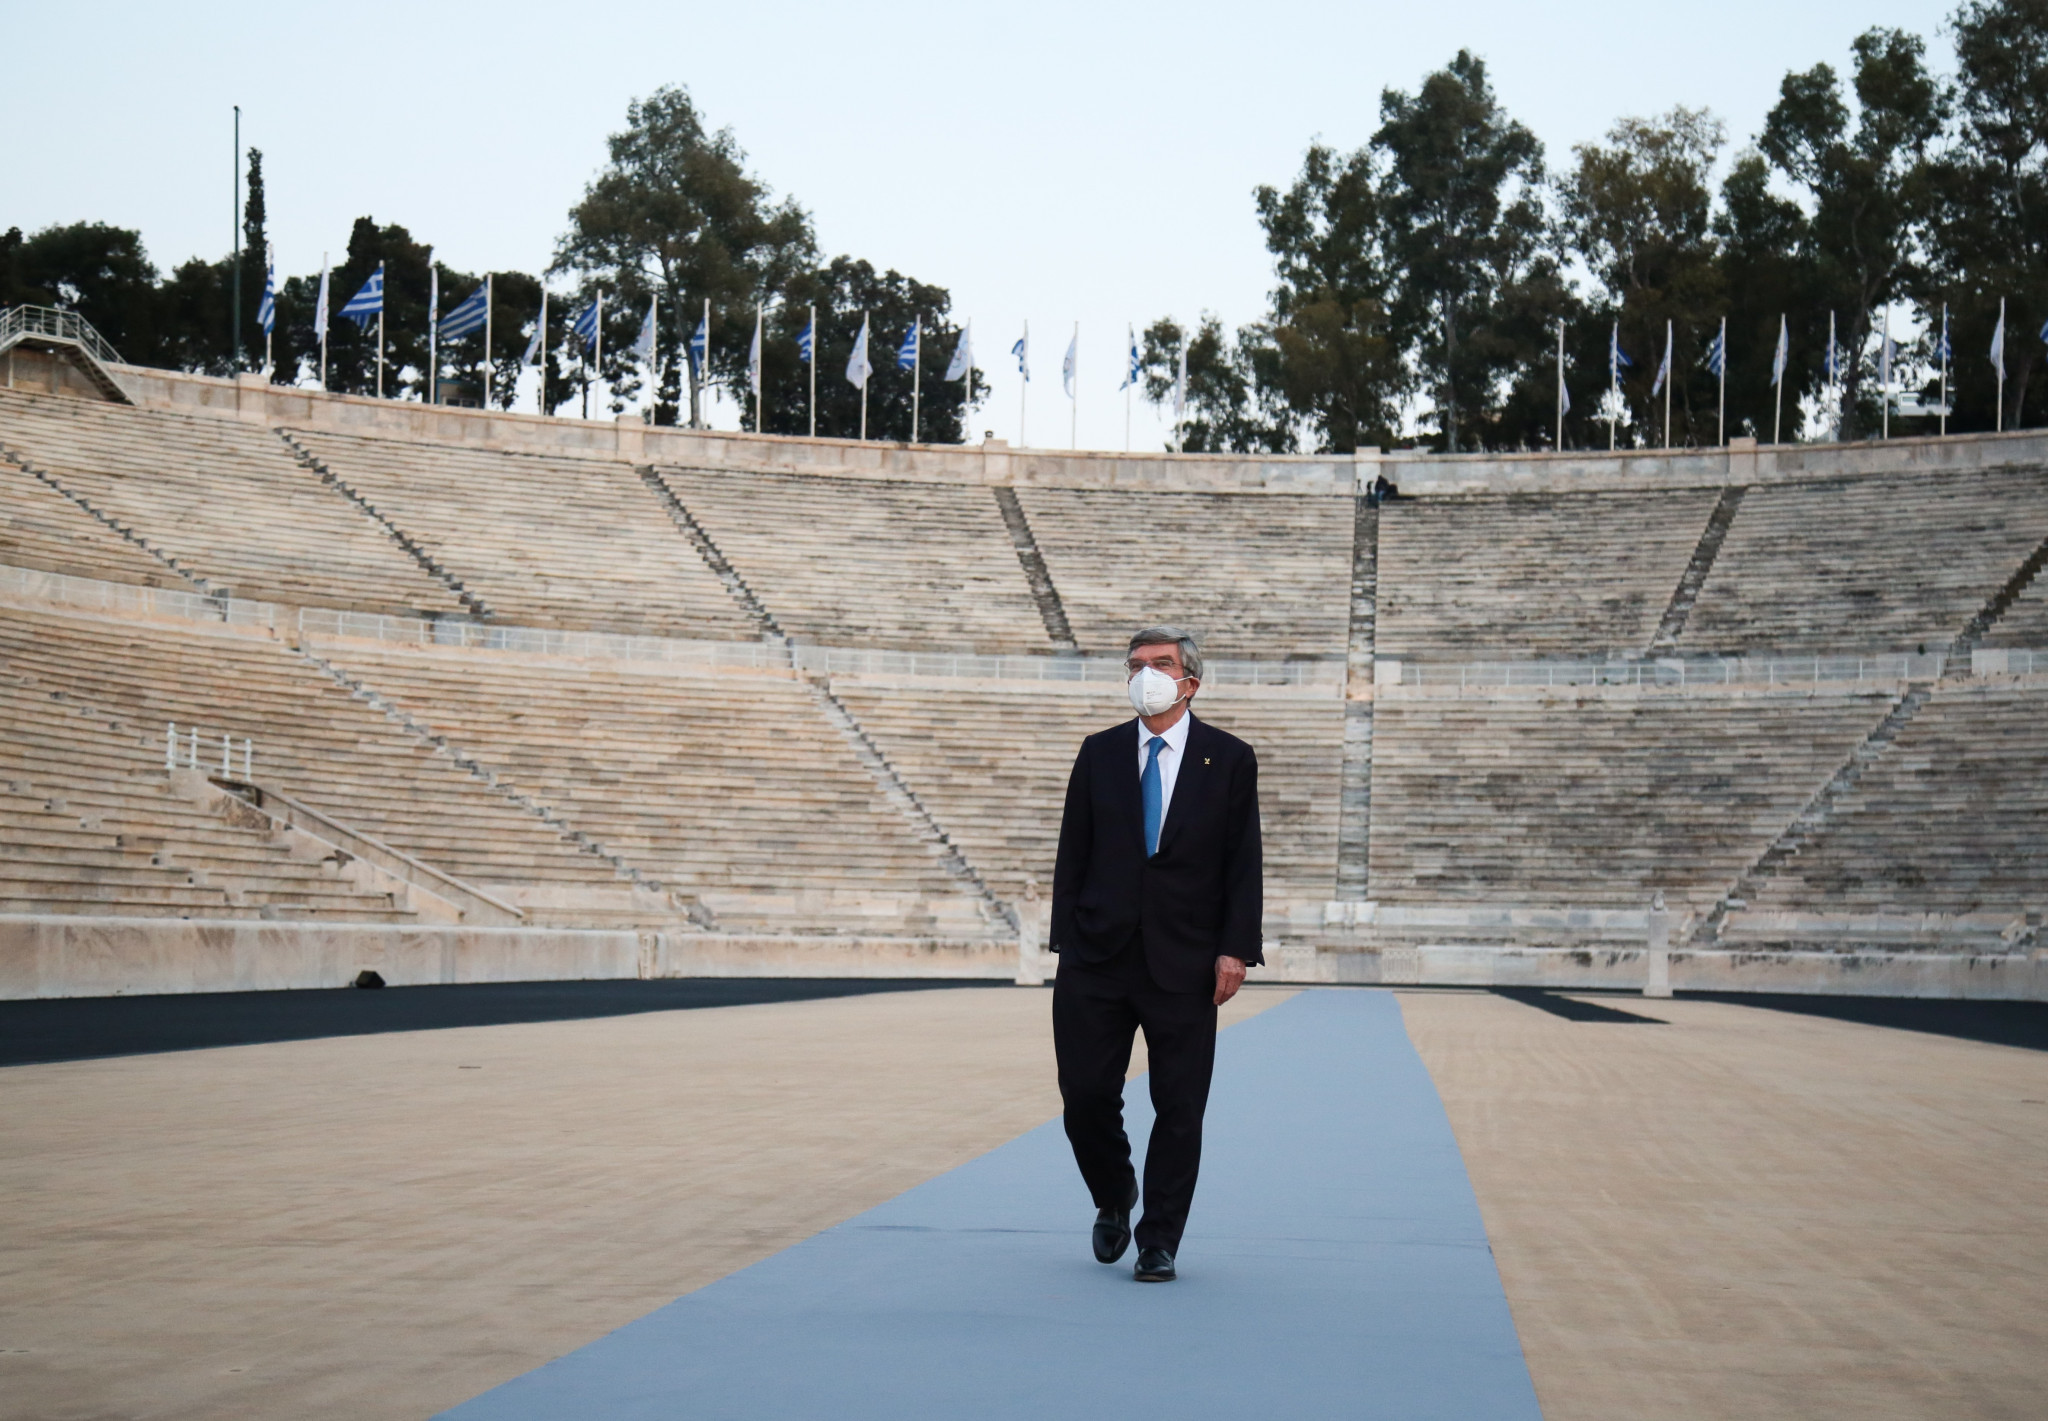 The visit to Athens is Bach's first foreign trip since his re-election as IOC President ©HOC